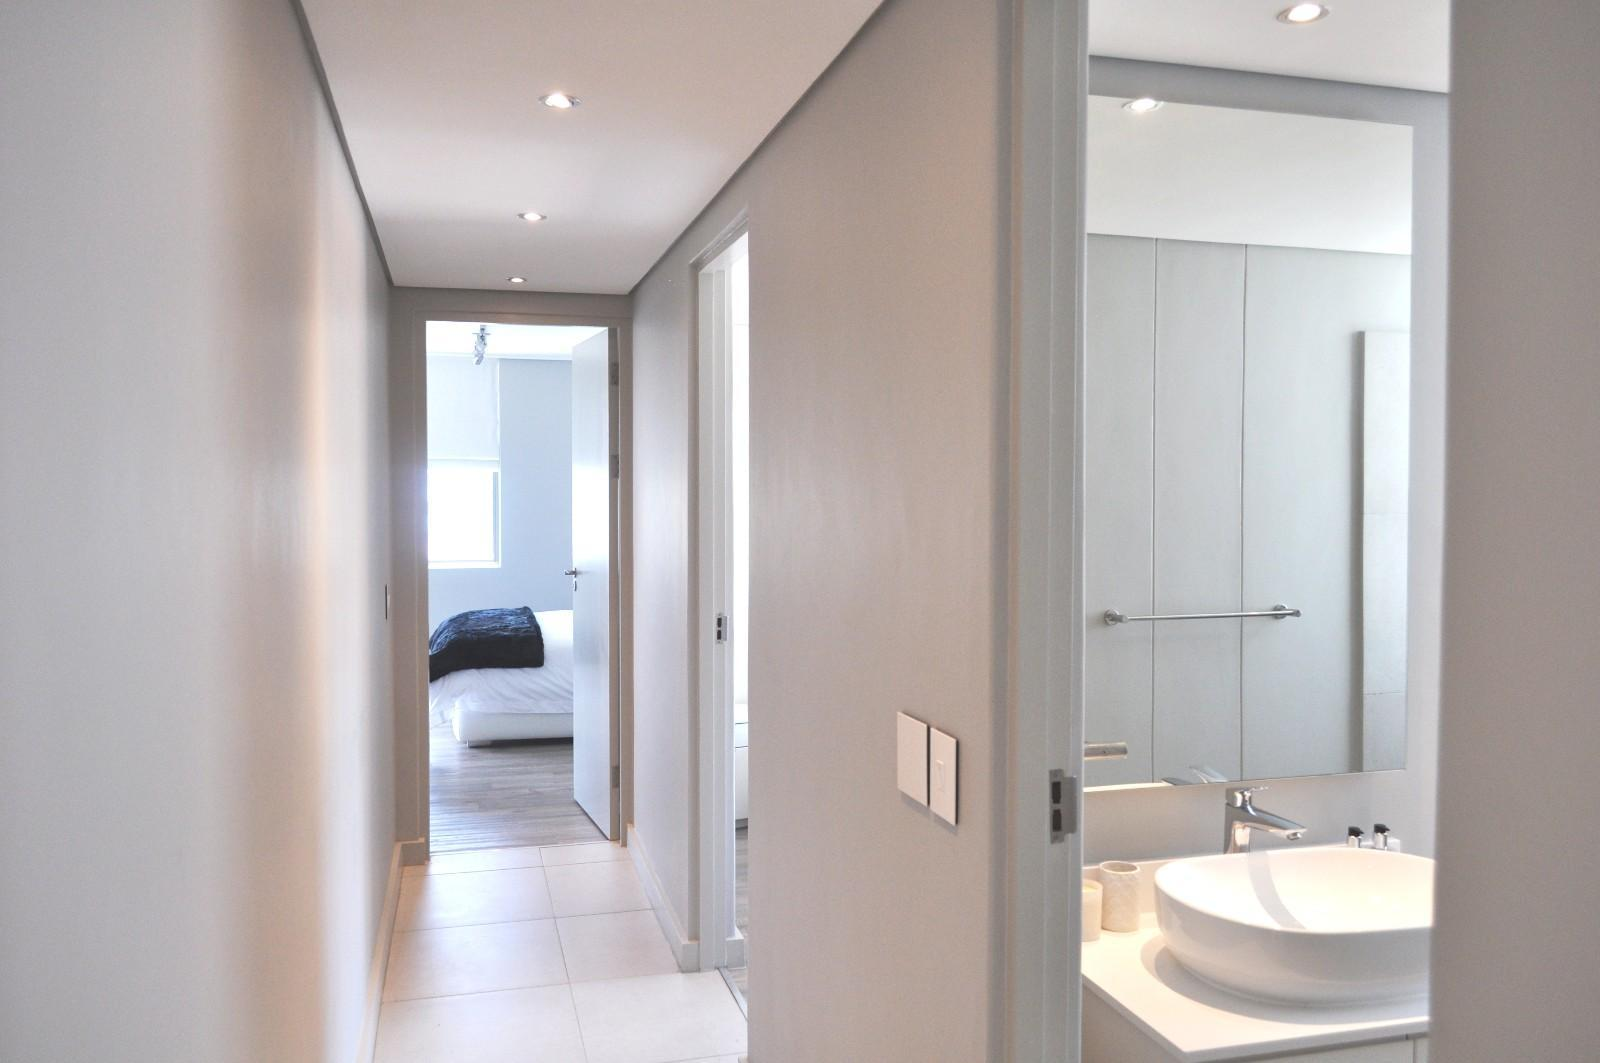 Apartment in Sea Point - Passage way